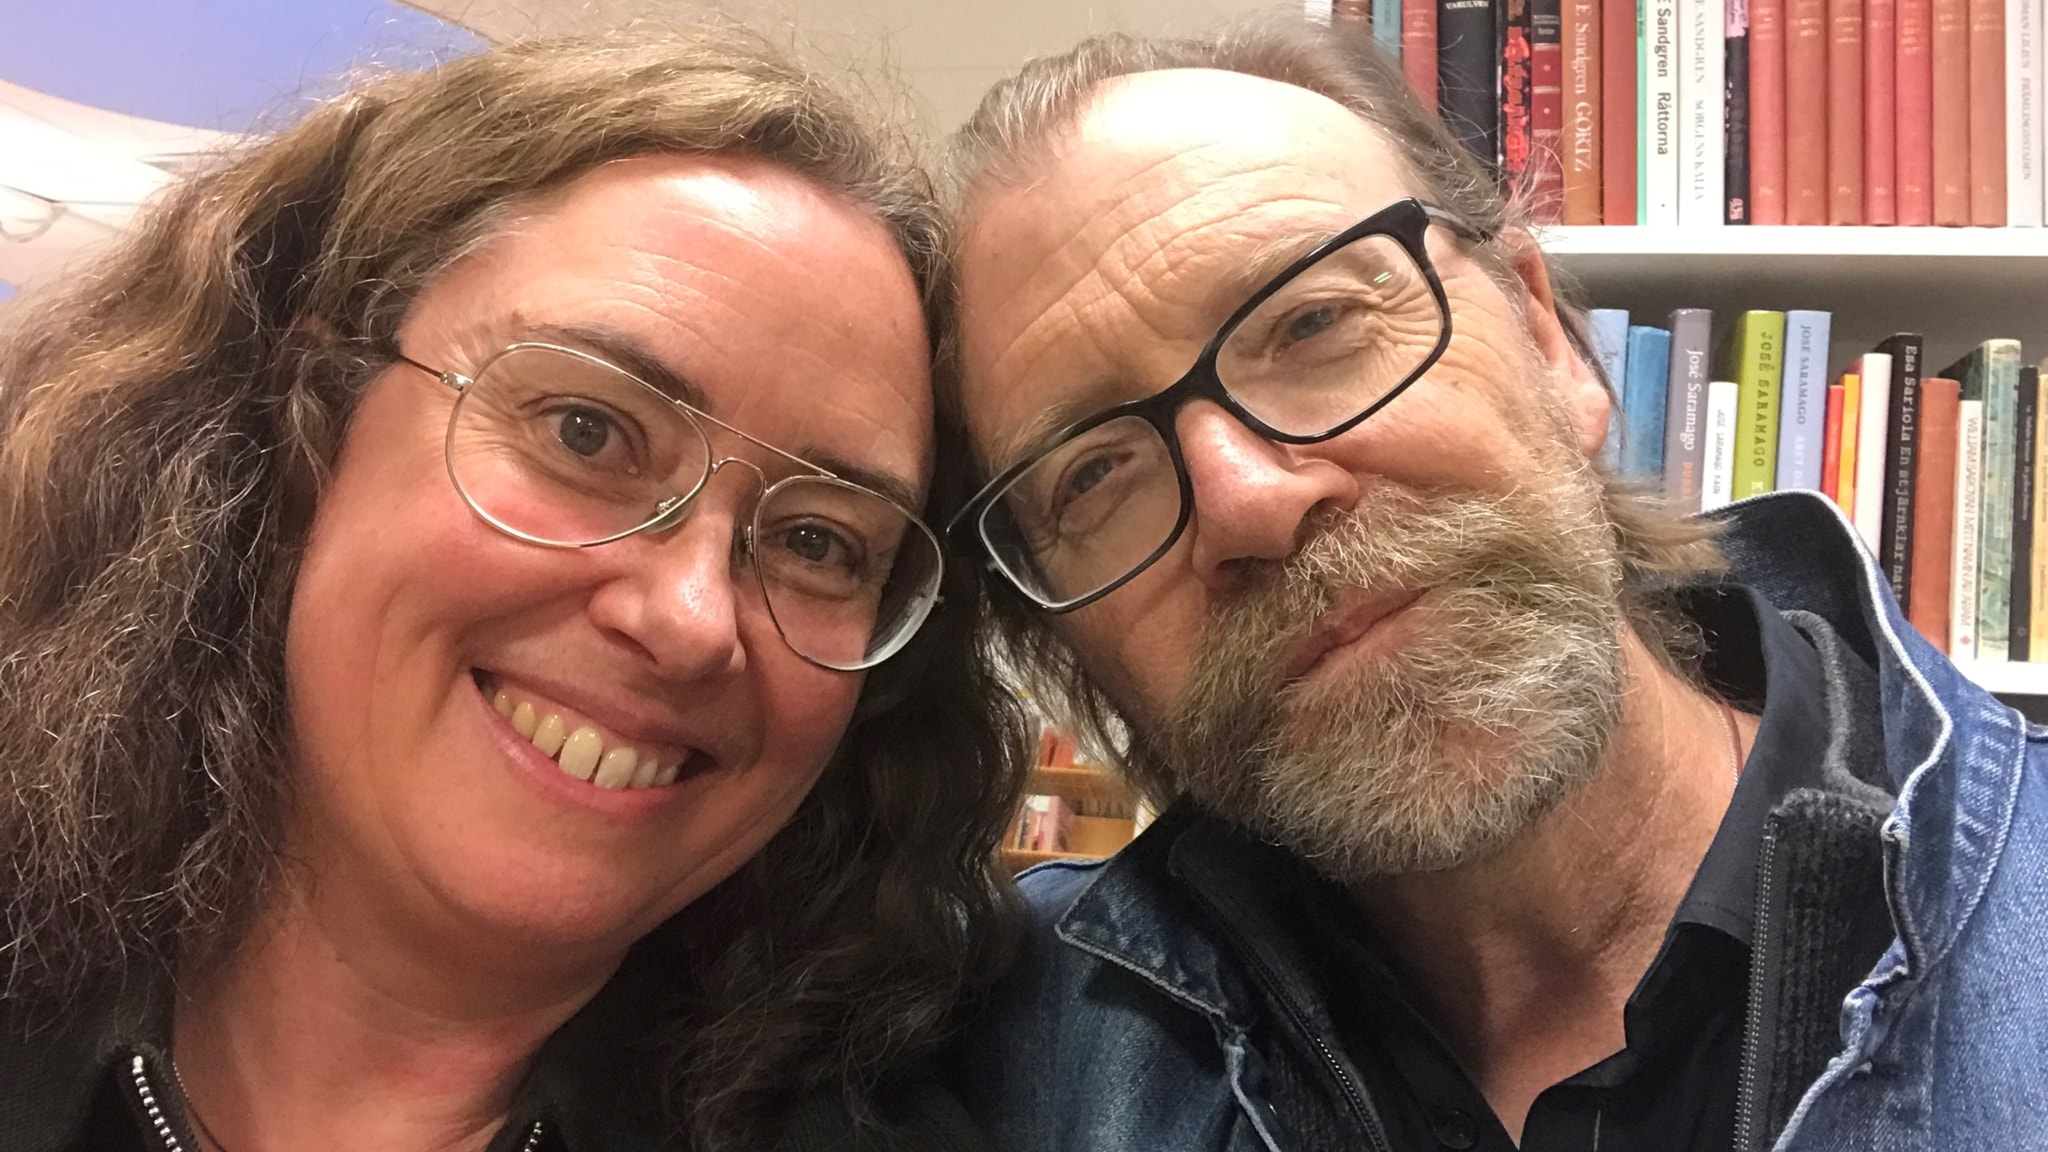 George Saunders on writing and the importance of goodness